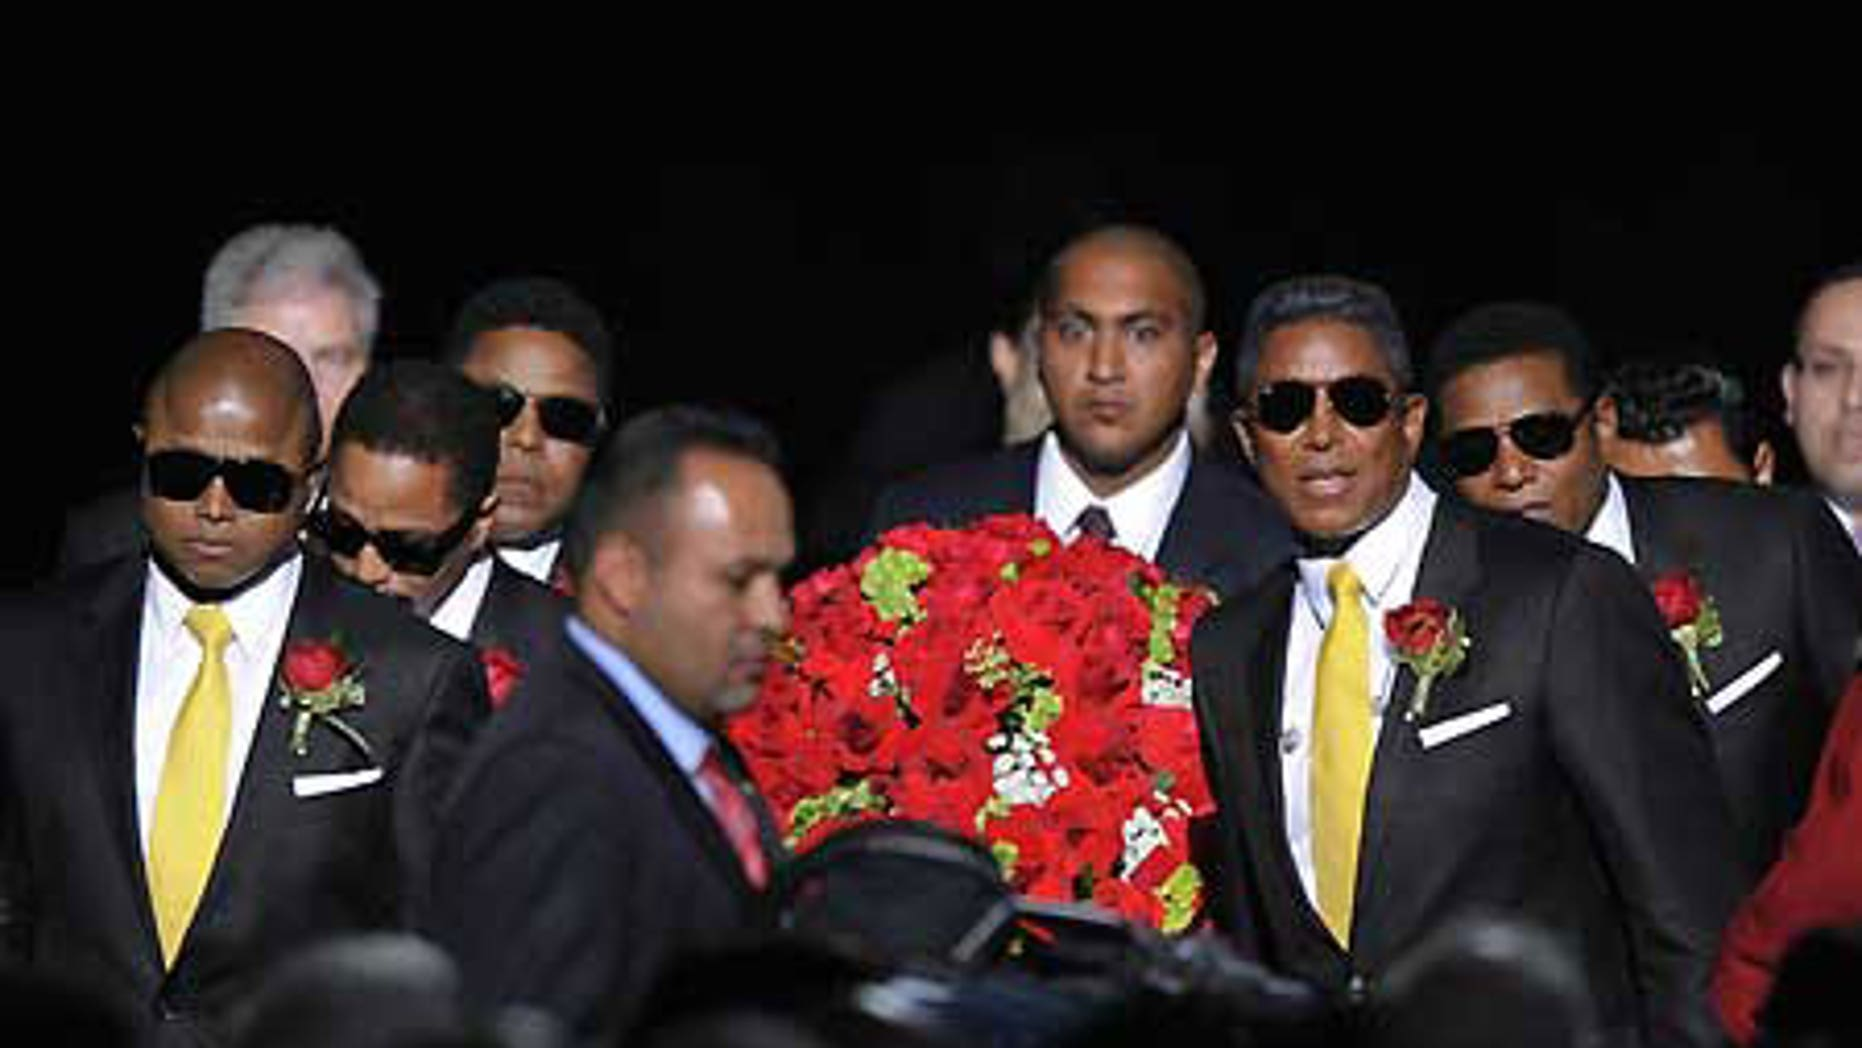 July 7: Michael Jackson's brothers carry his casket to a stage in the Staples Center for the singer's public memorial.